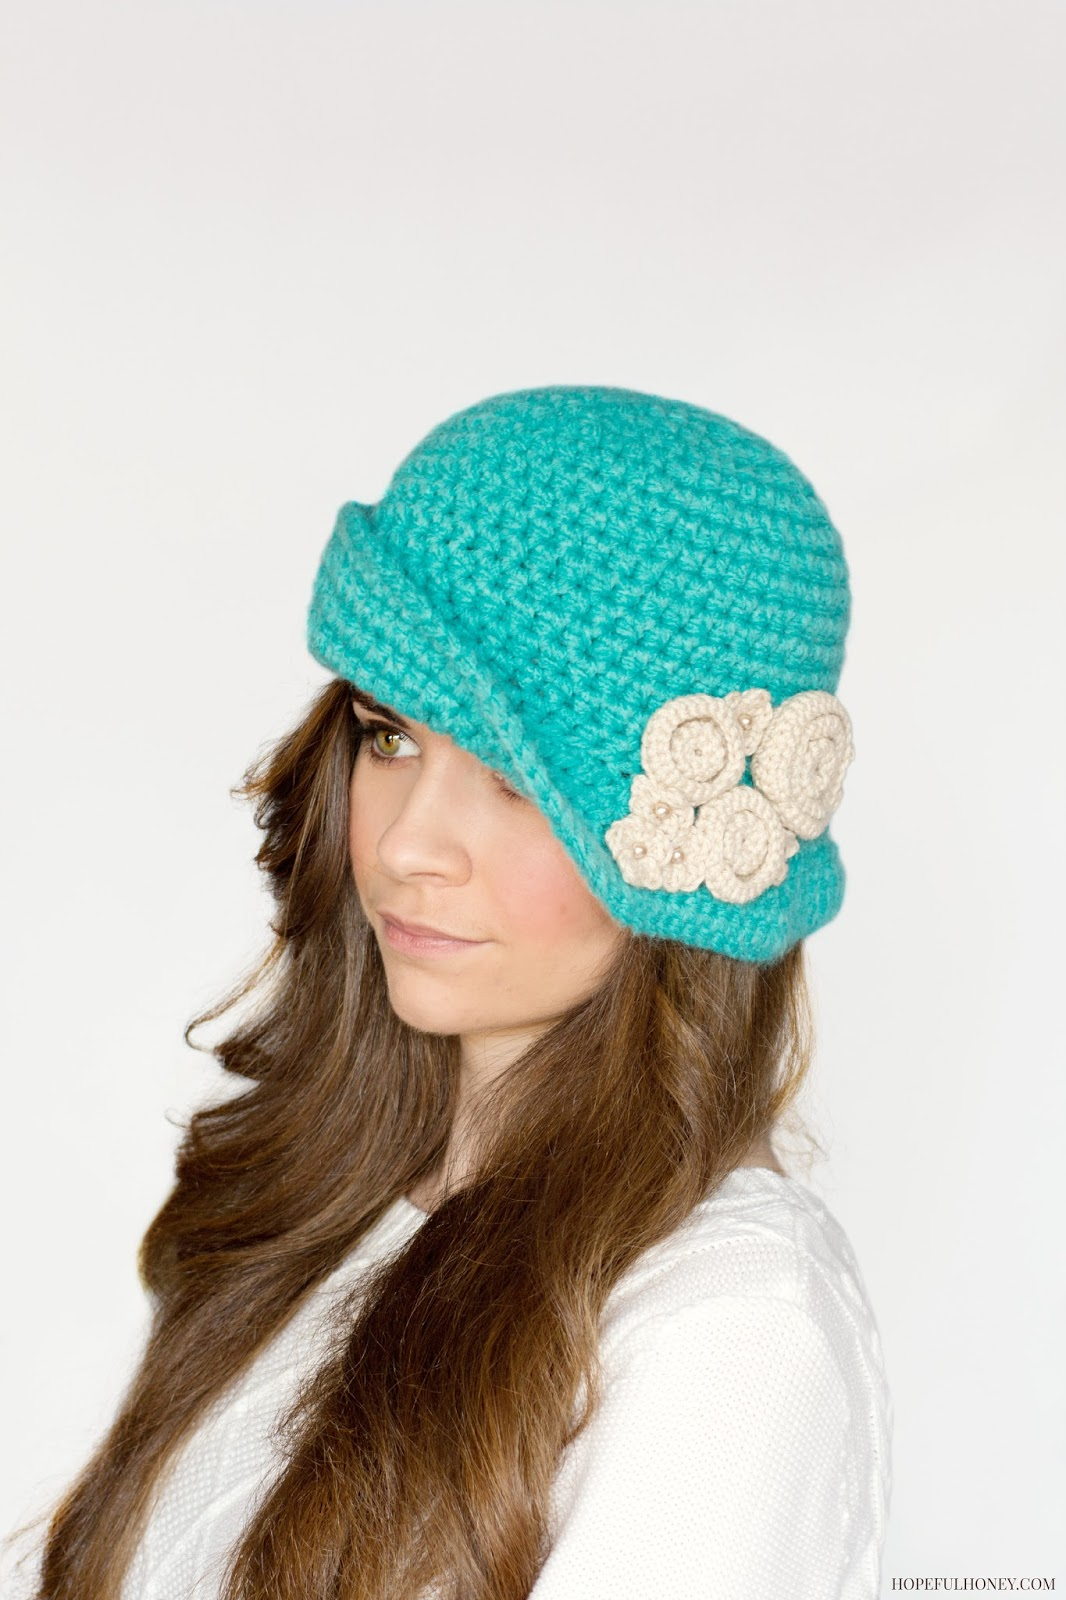 Crochet Hat Pattern Cloche : Hopeful Honey Craft, Crochet, Create: August 2014